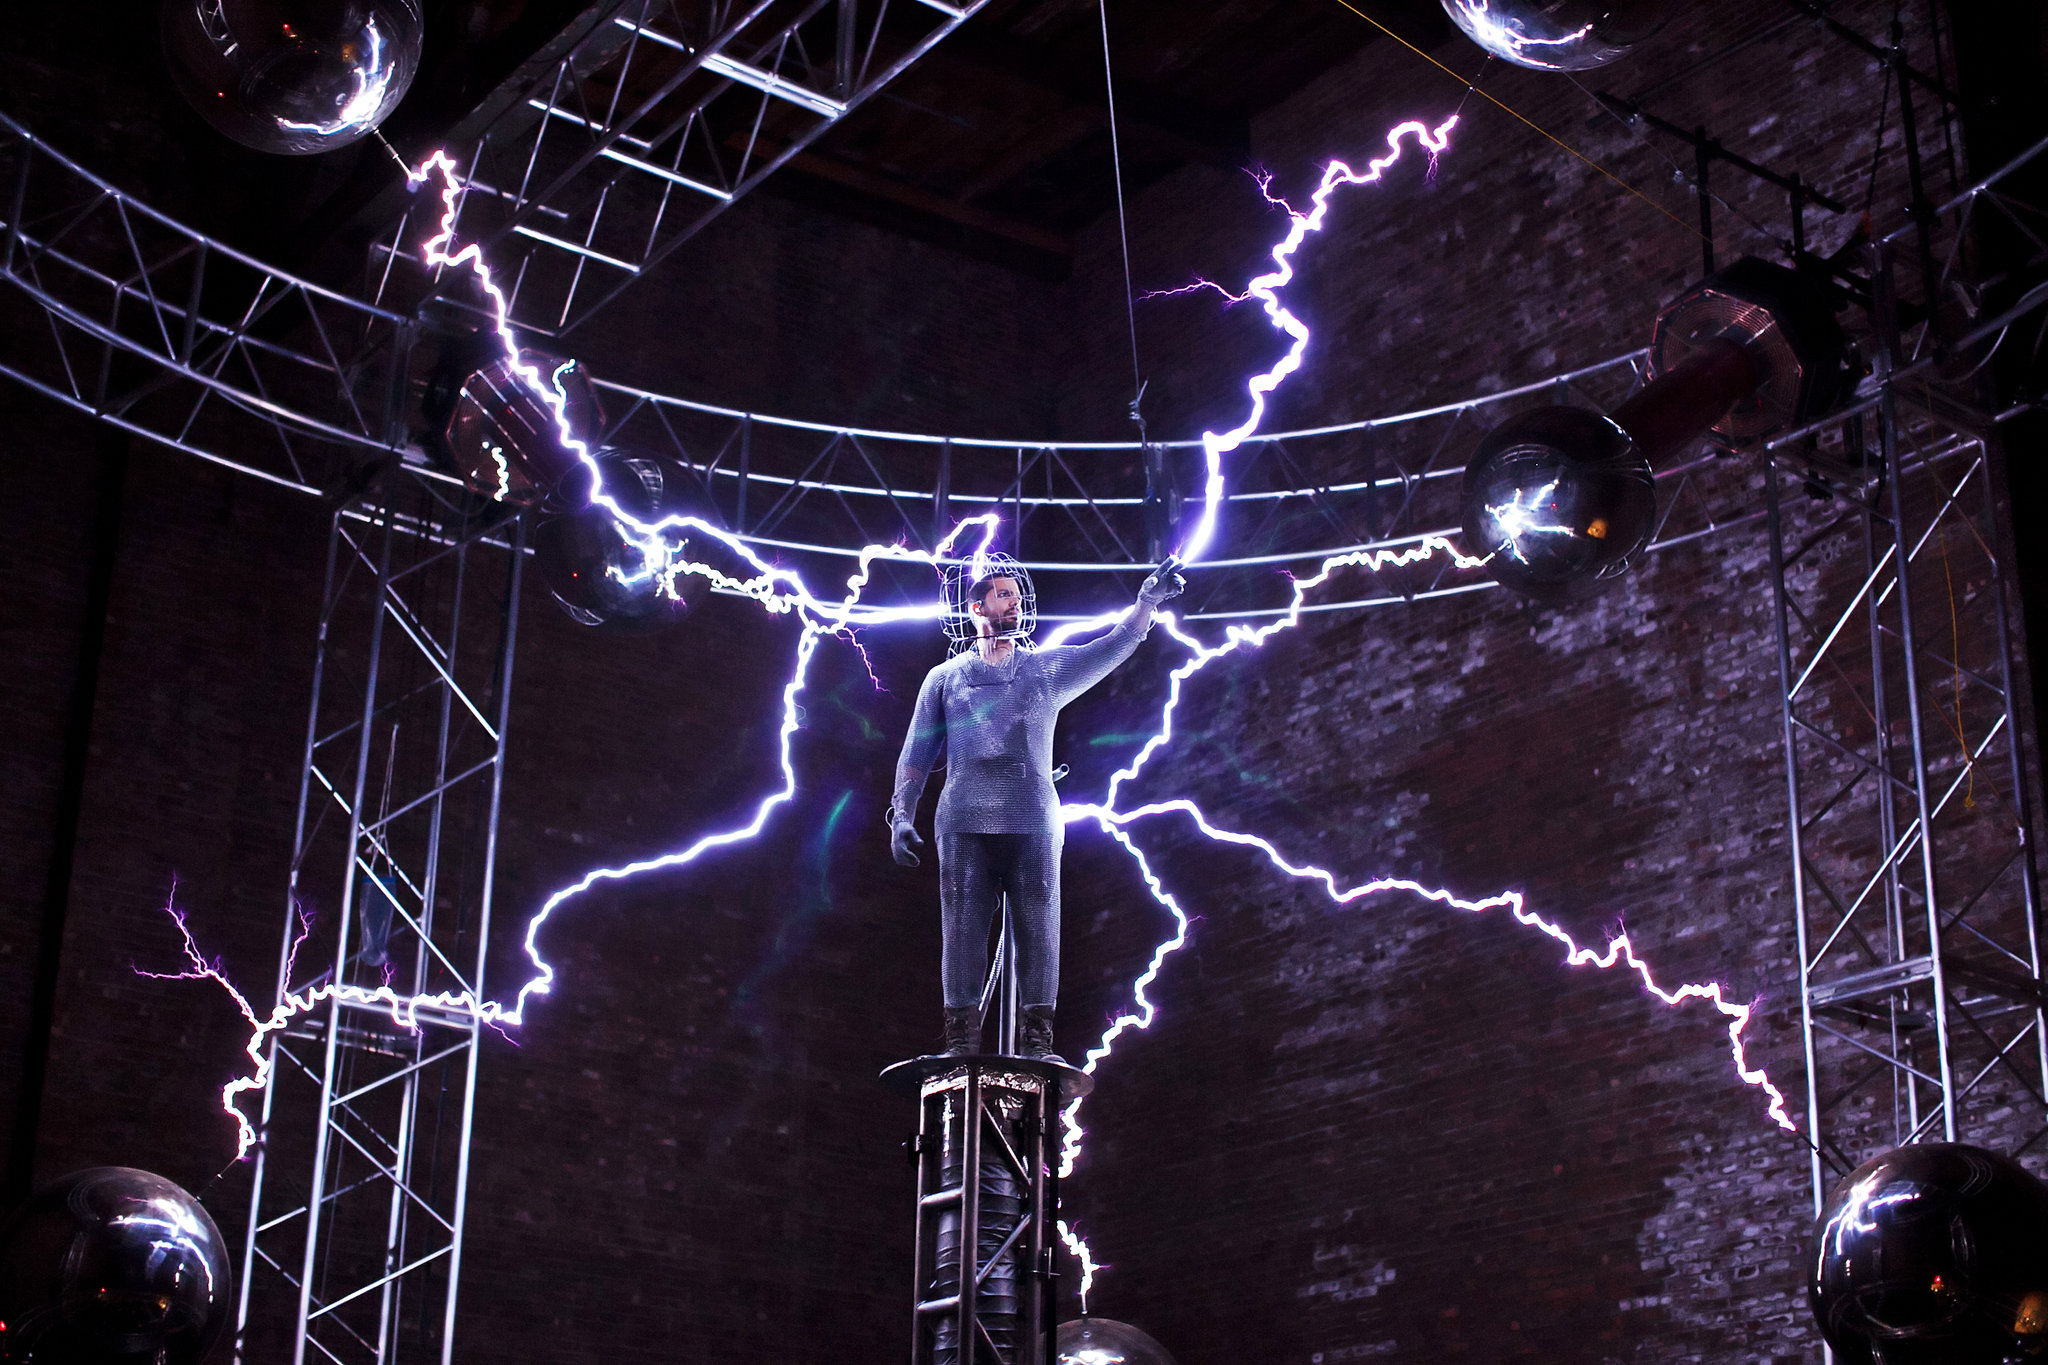 Man Today Electrocuted